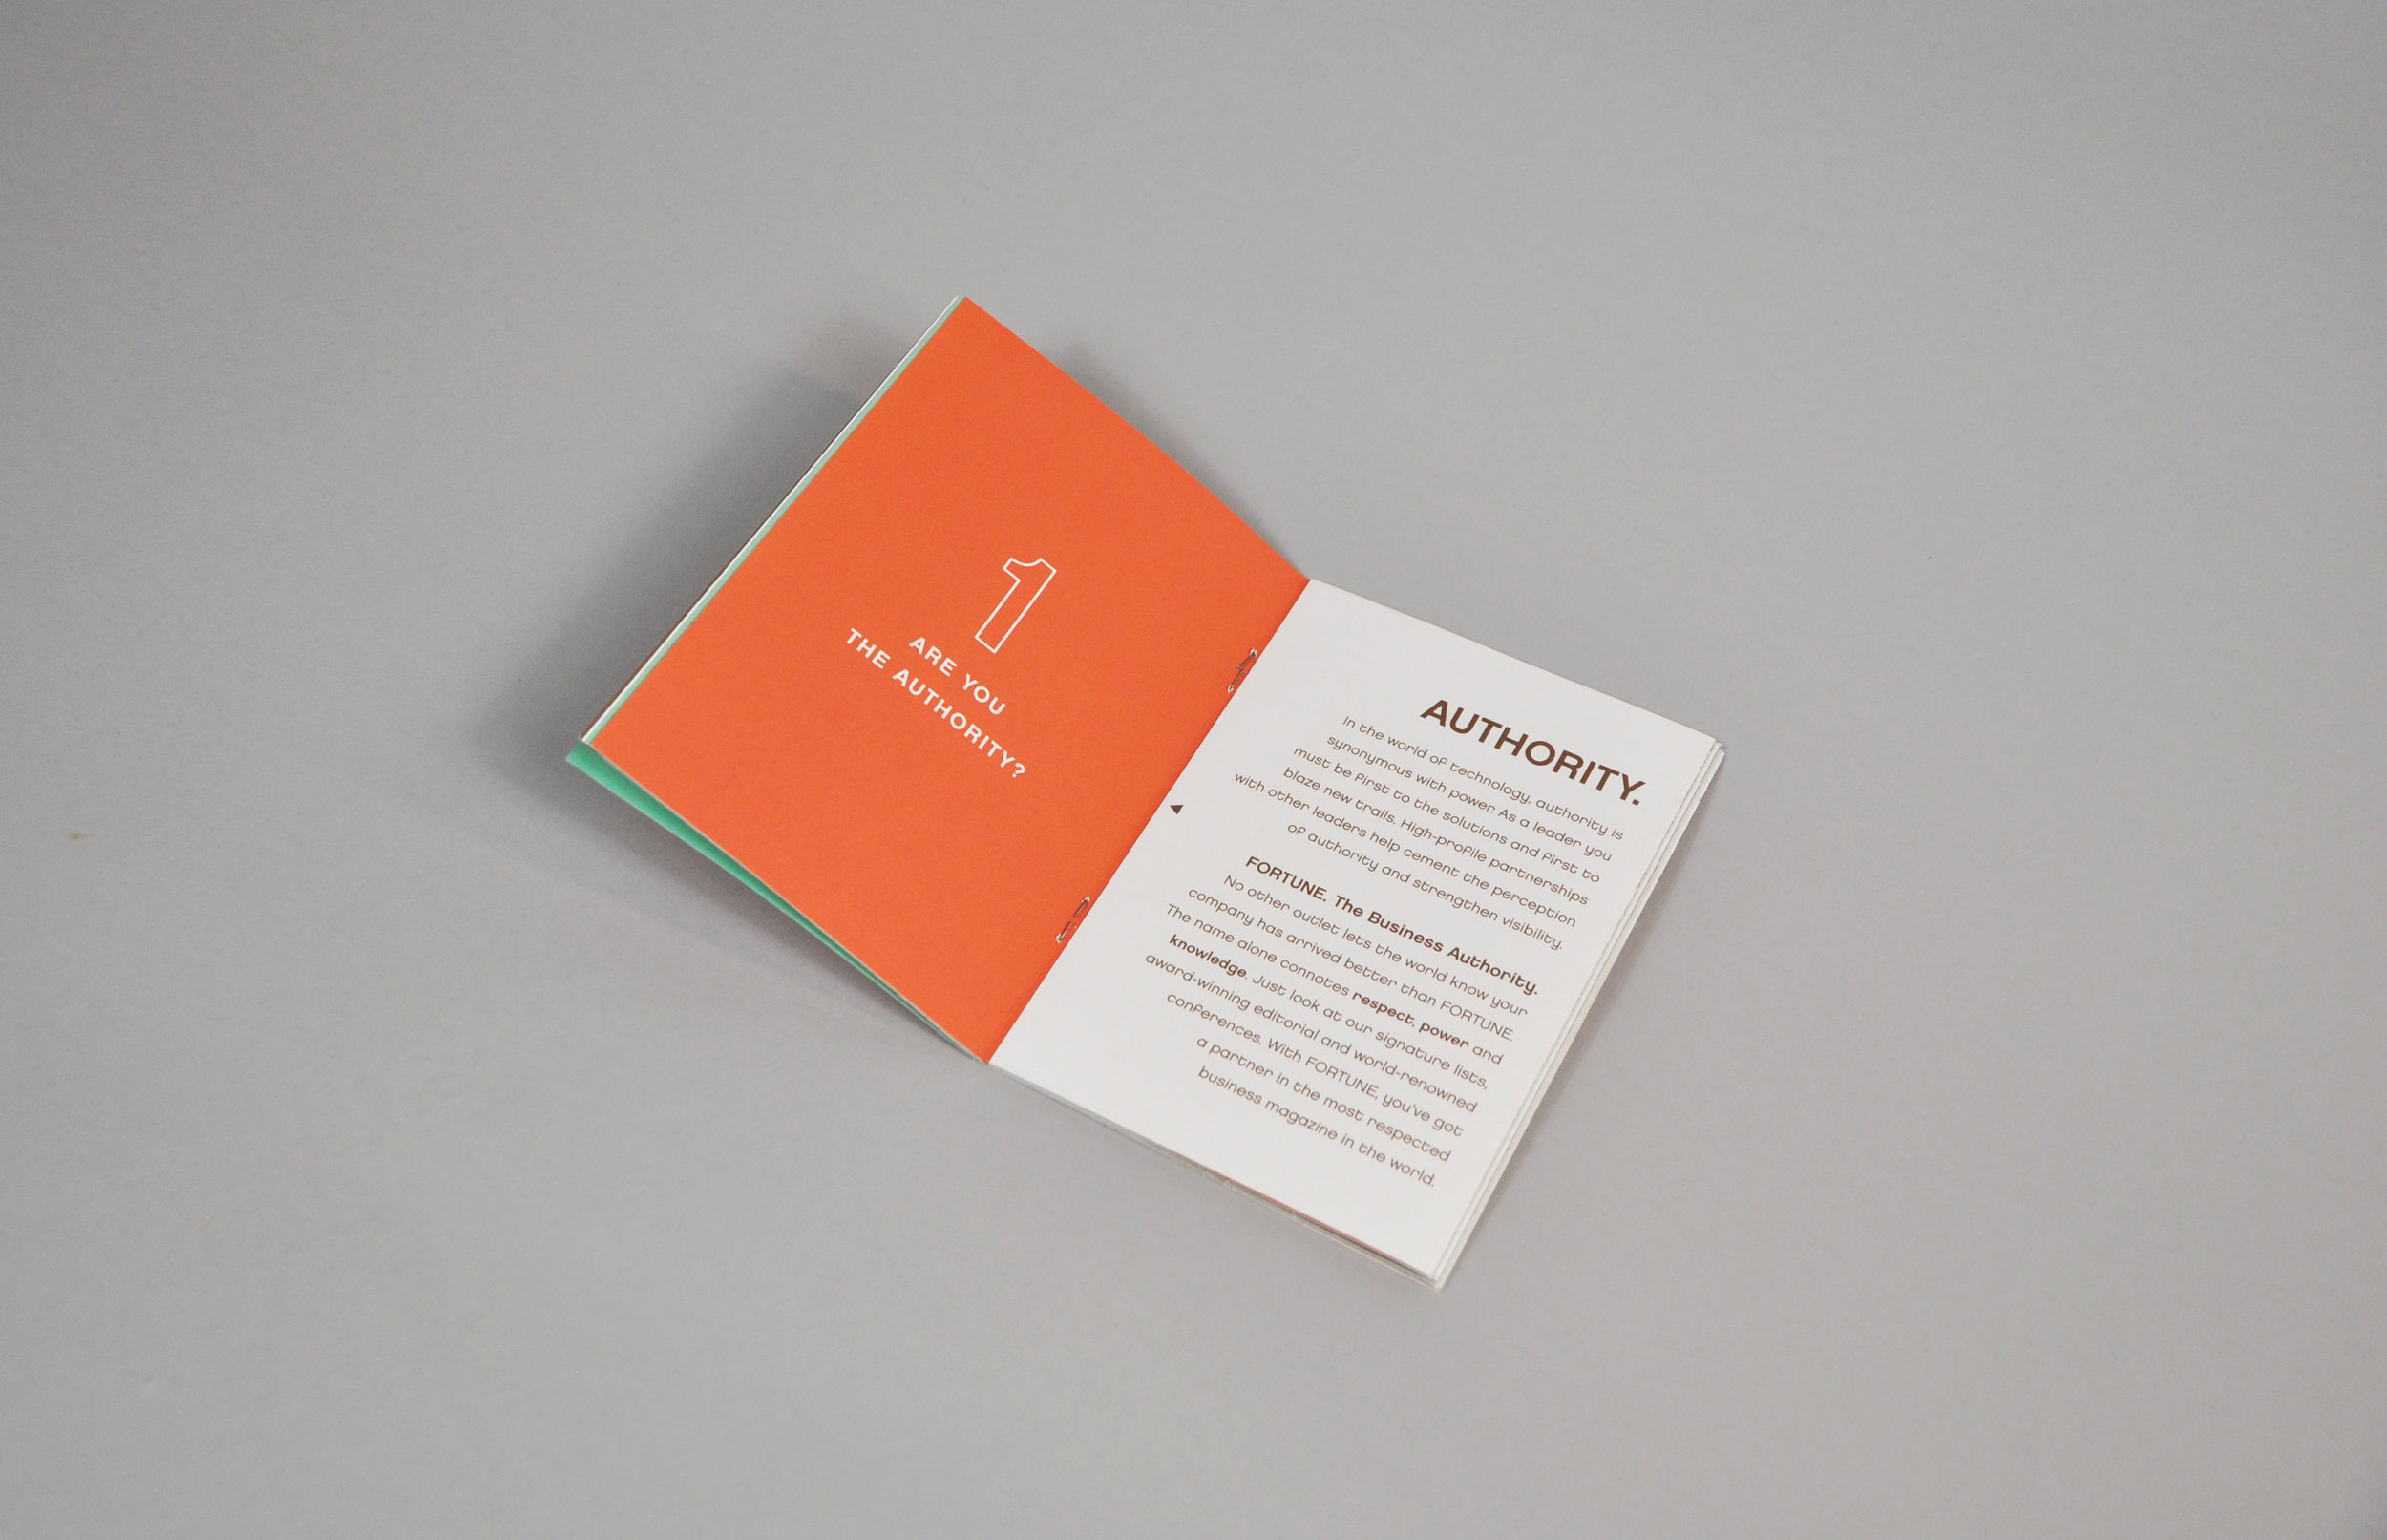 Tech Brochure interior spread with orange & white background